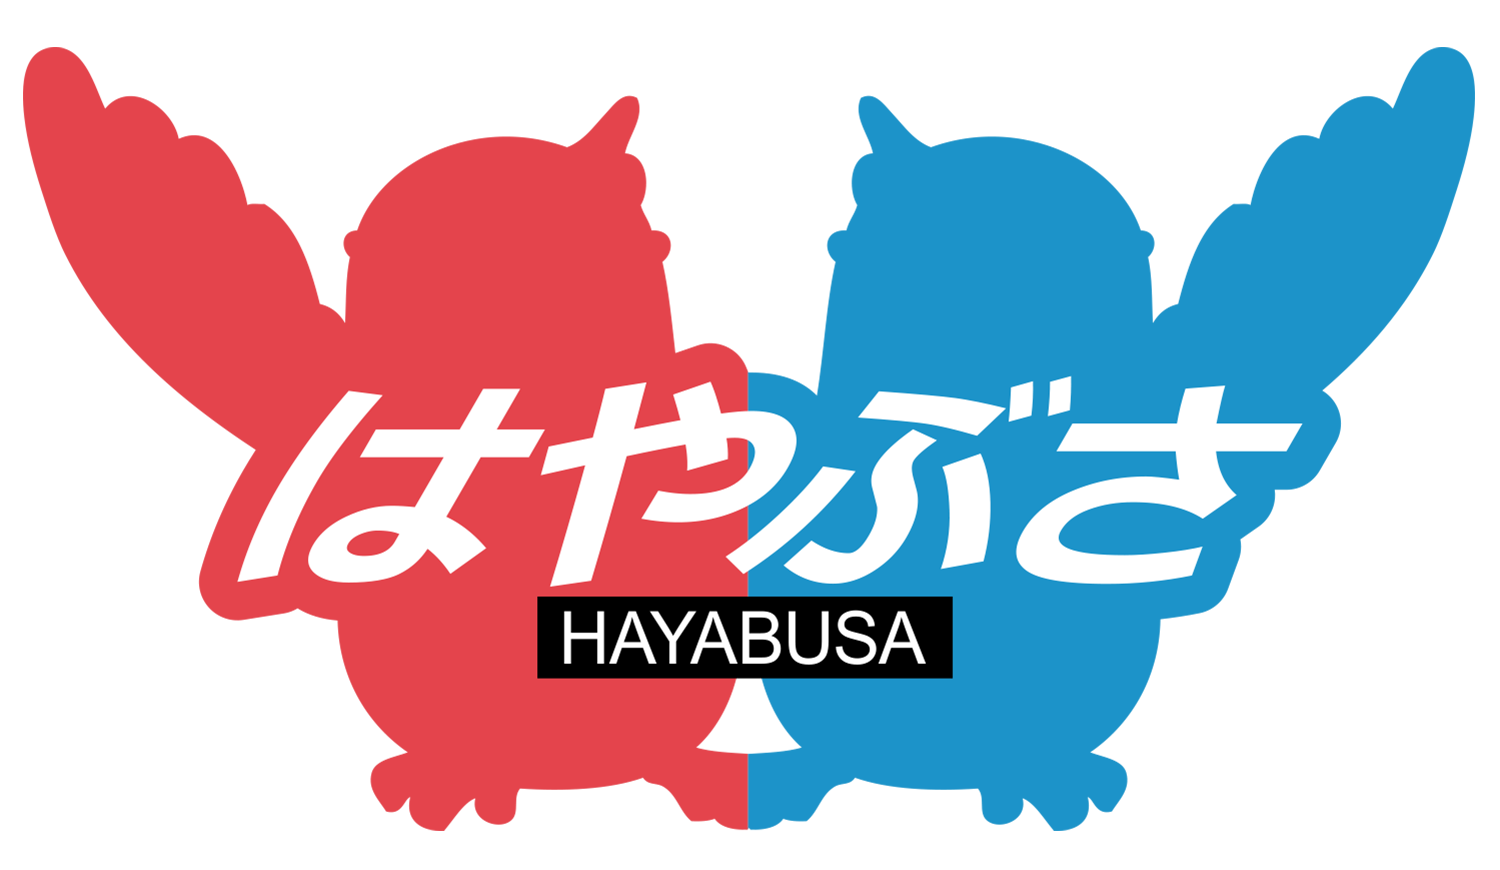 Hayabusa Site officiel